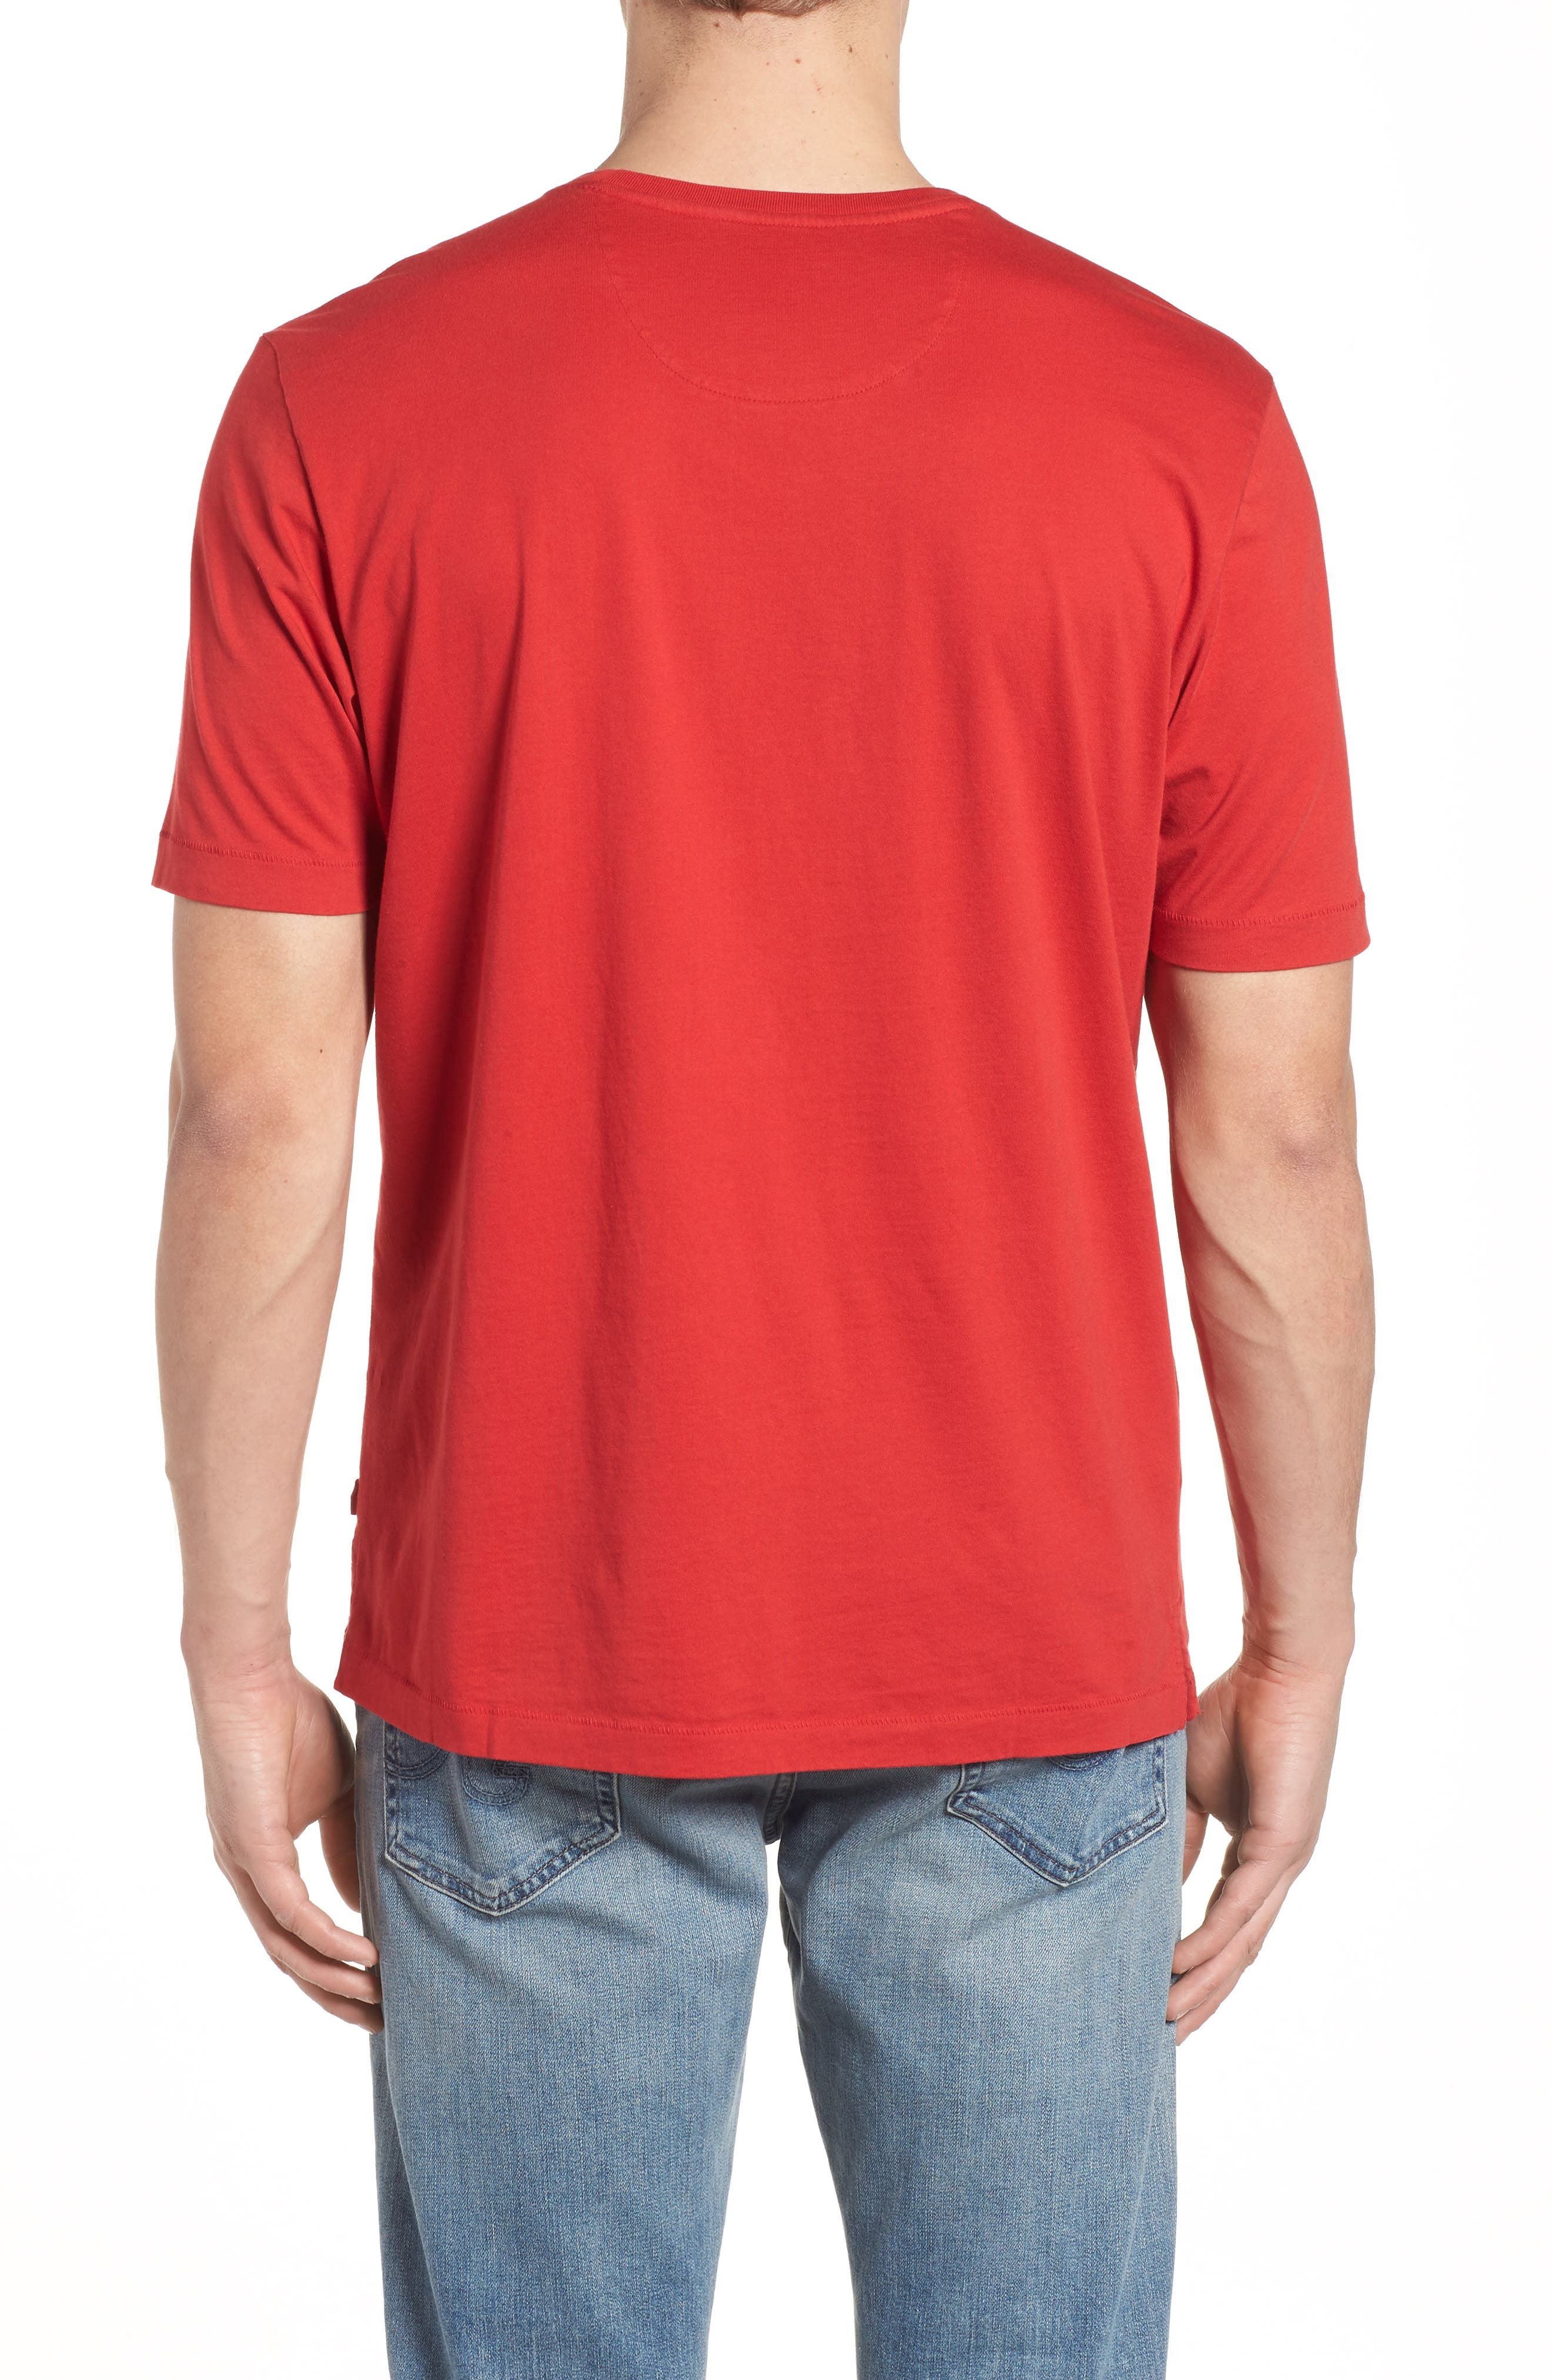 'New Bali Sky' Original Fit Crewneck Pocket T-Shirt,                             Alternate thumbnail 2, color,                             Regal Red